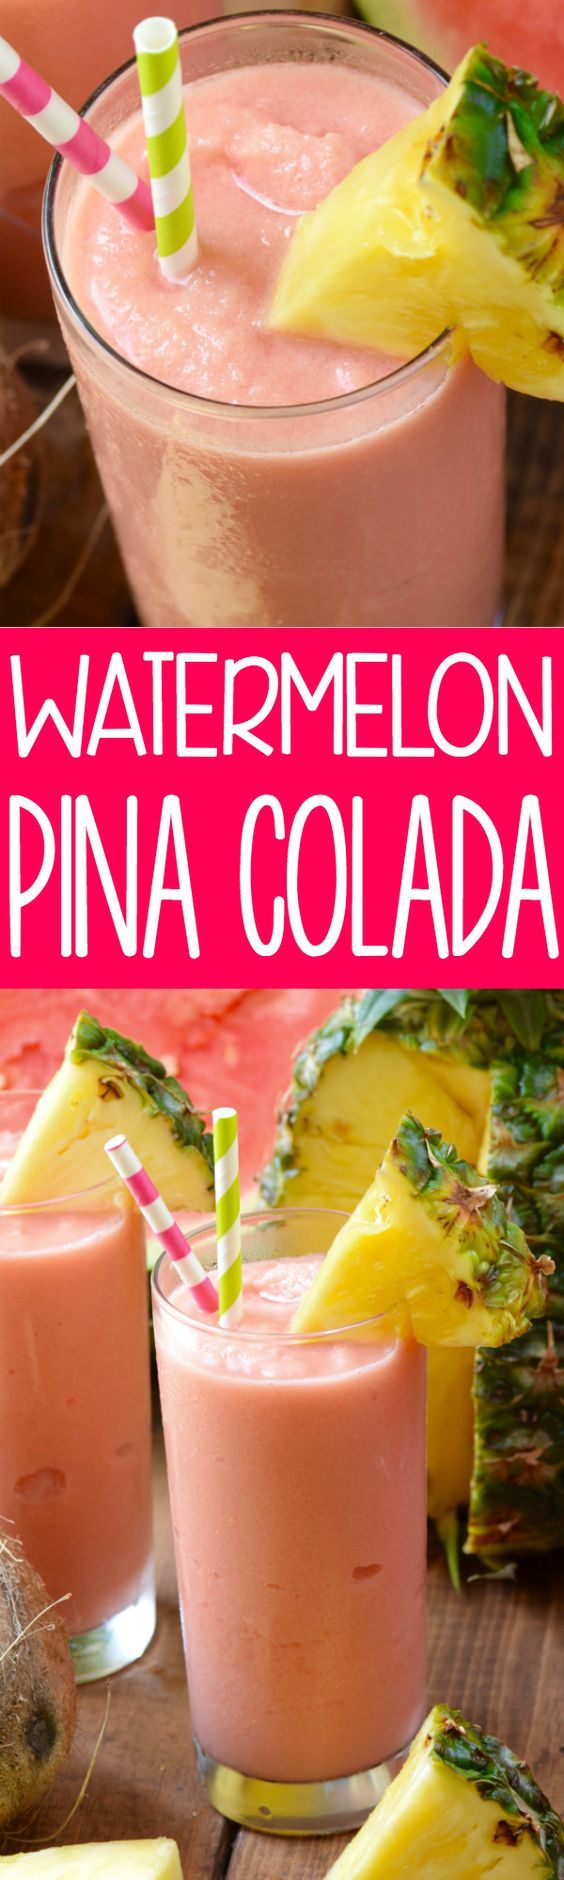 This Watermelon Pina Colada is the perfect summer twist on a regular Pina Colada!